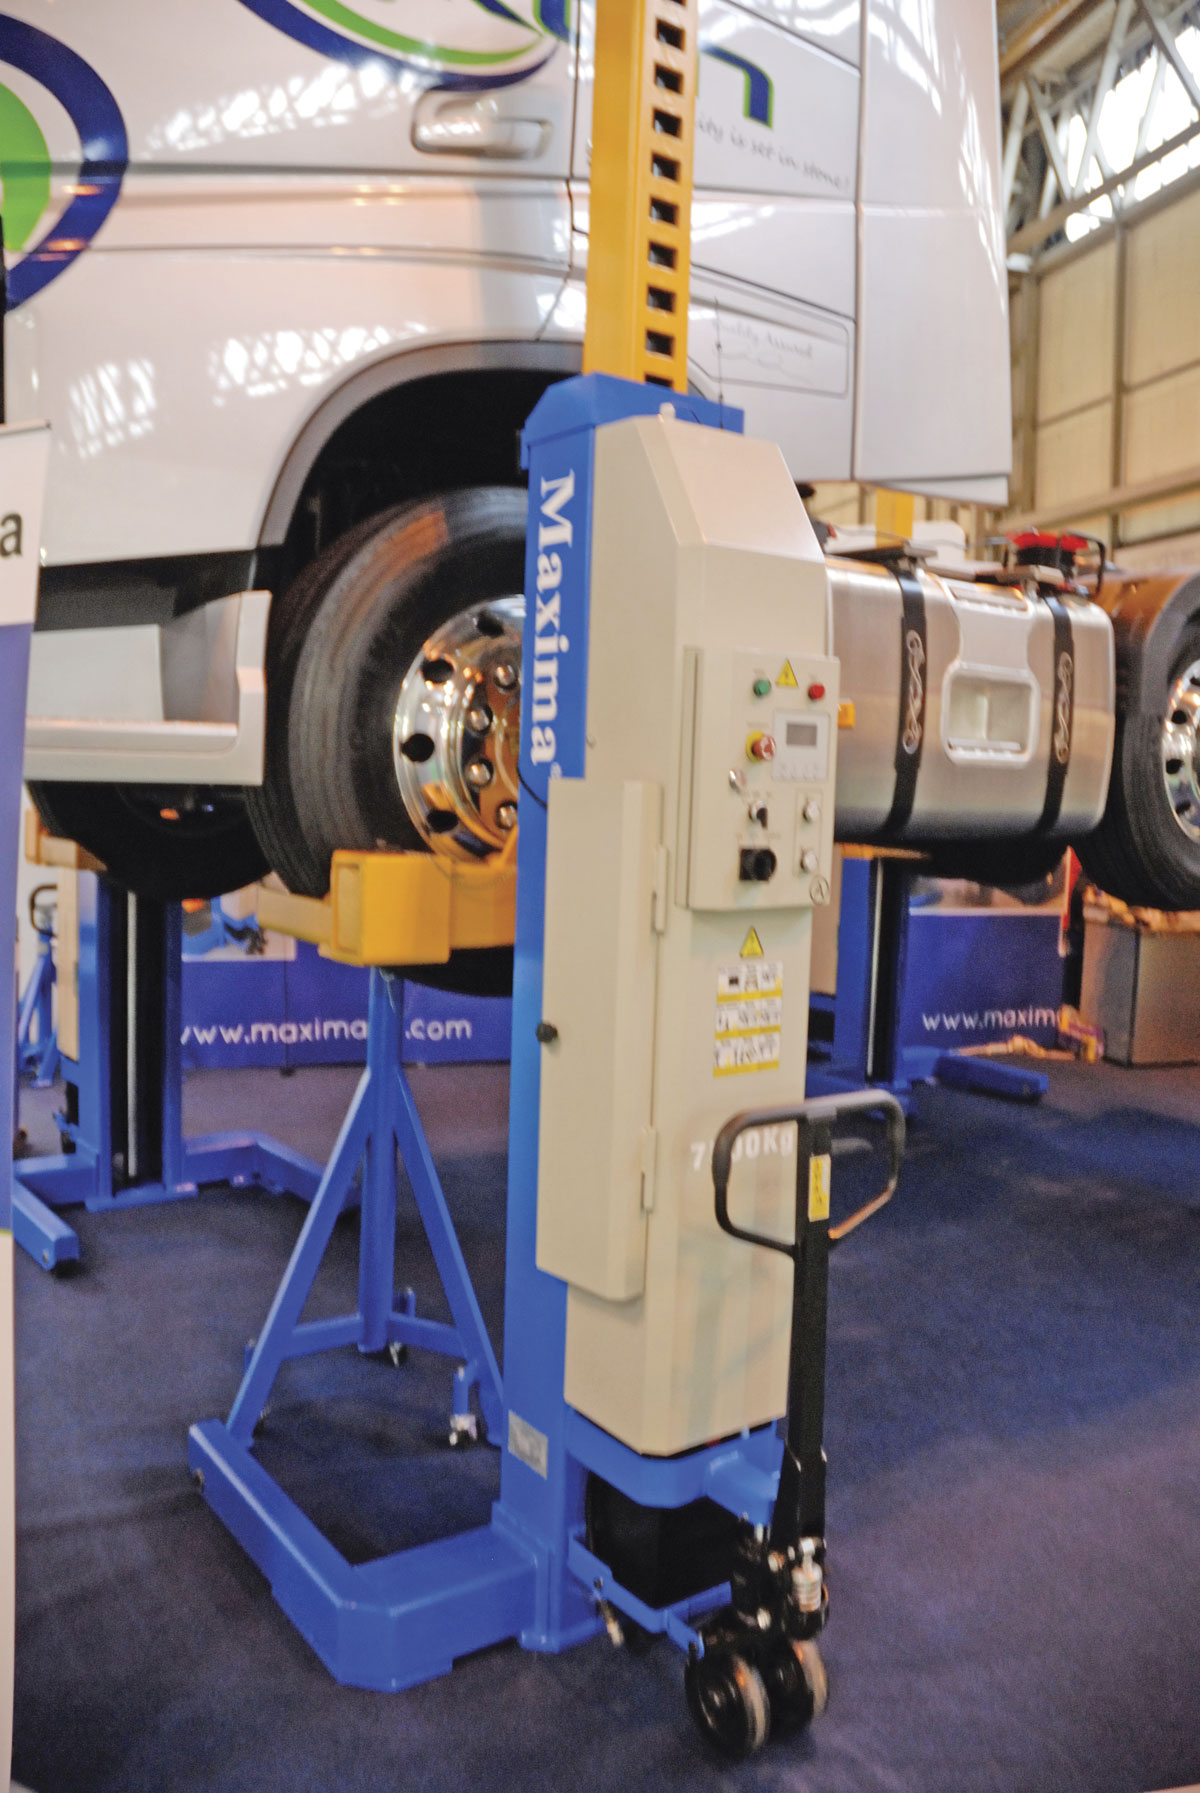 The Maxima mobile column vehicle lifting system